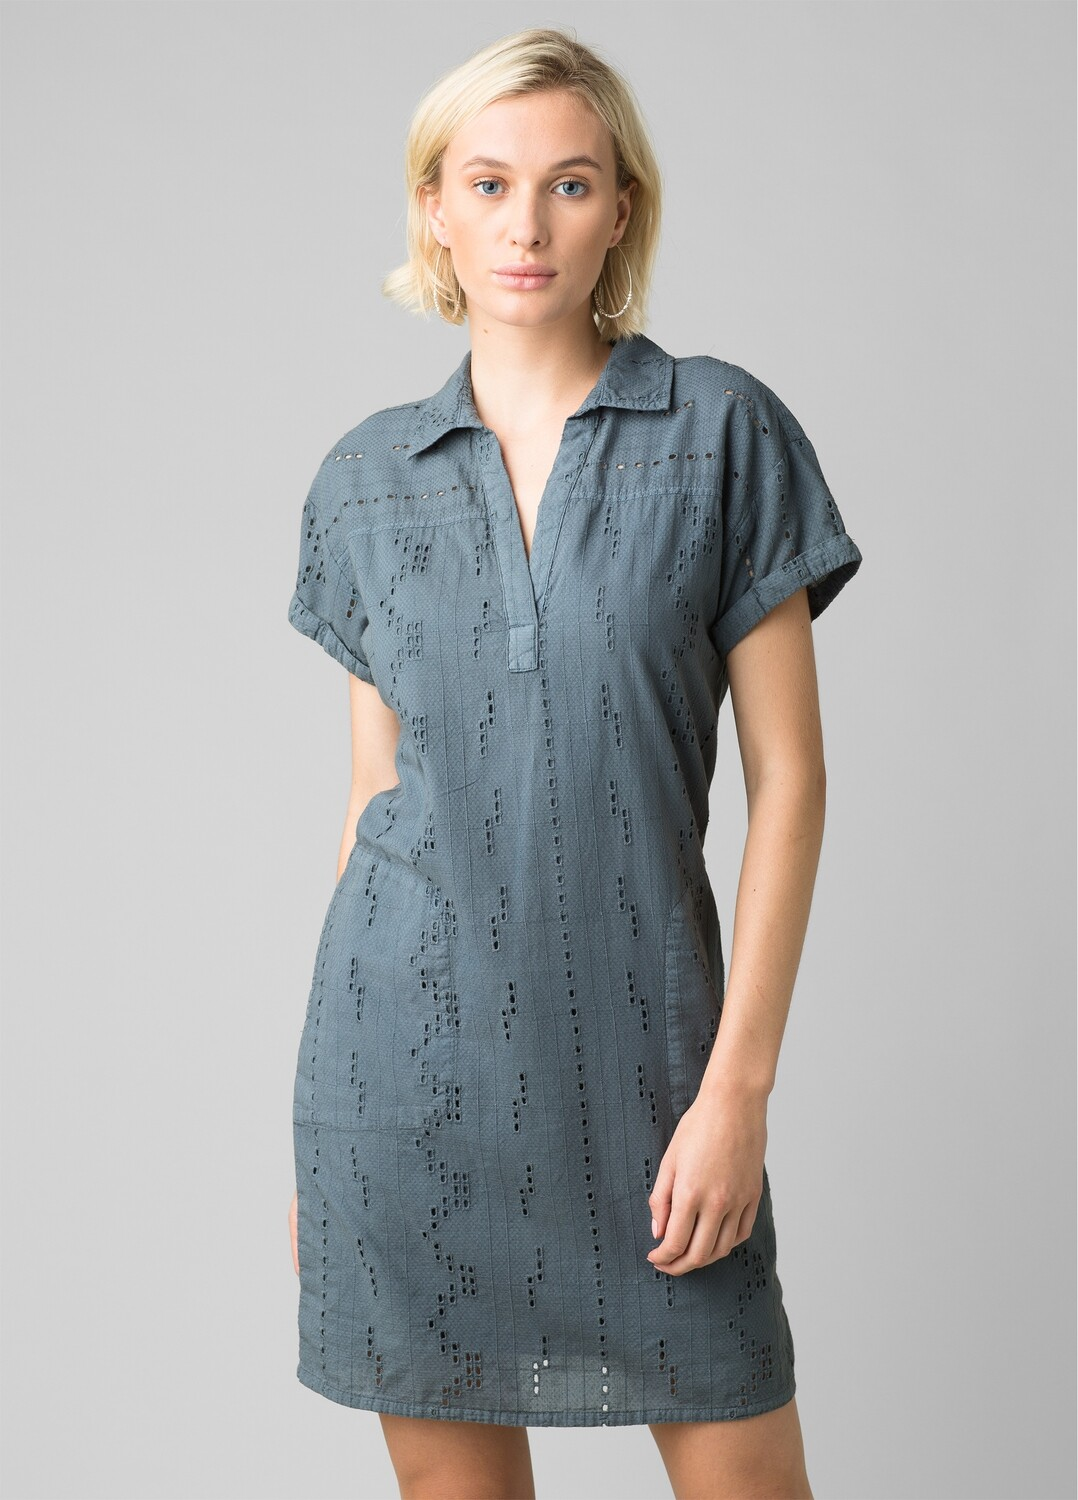 PRANA Ladyland Dress